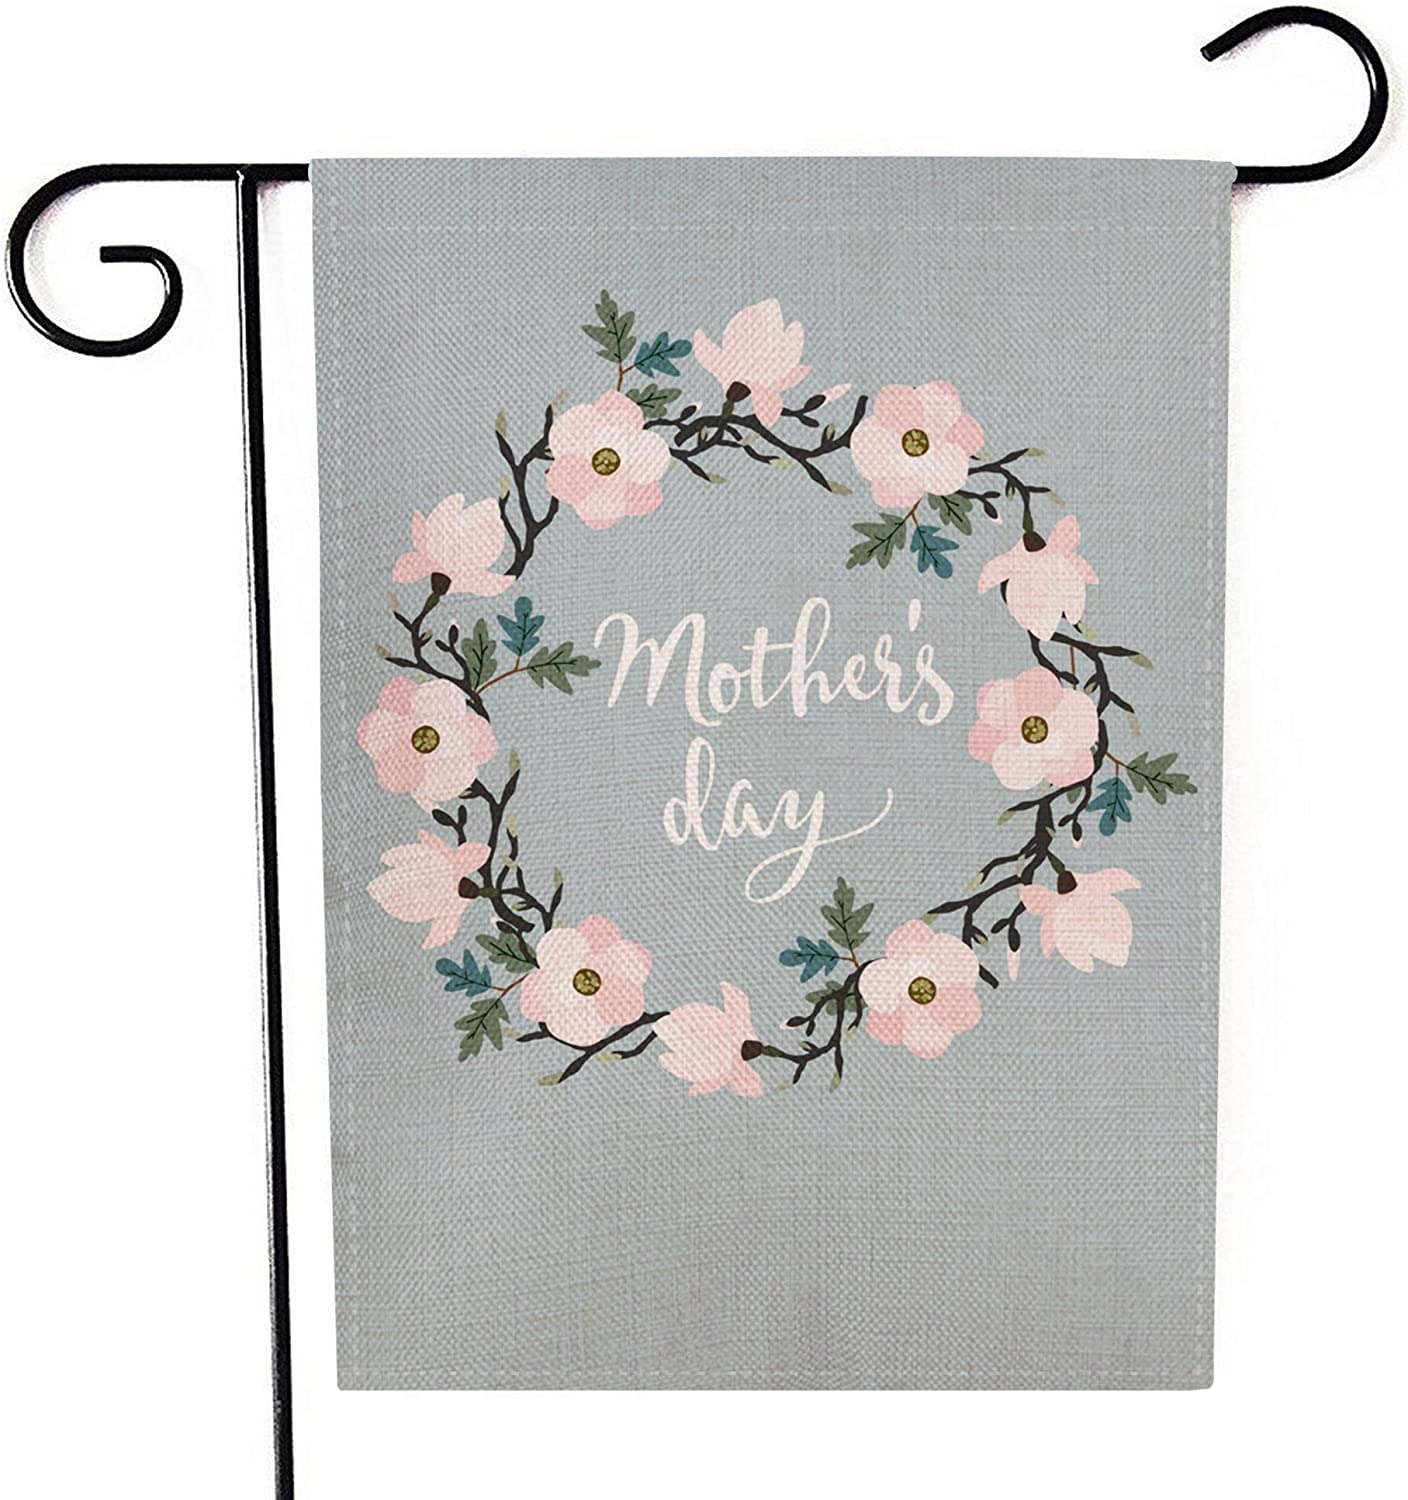 Kissenday Happy Mother's Day Garden Flag, 12.5 x 18 Inch Outdoor Decoration Gift Floral Wreath Vertical Double Sided Banner Yard Decor